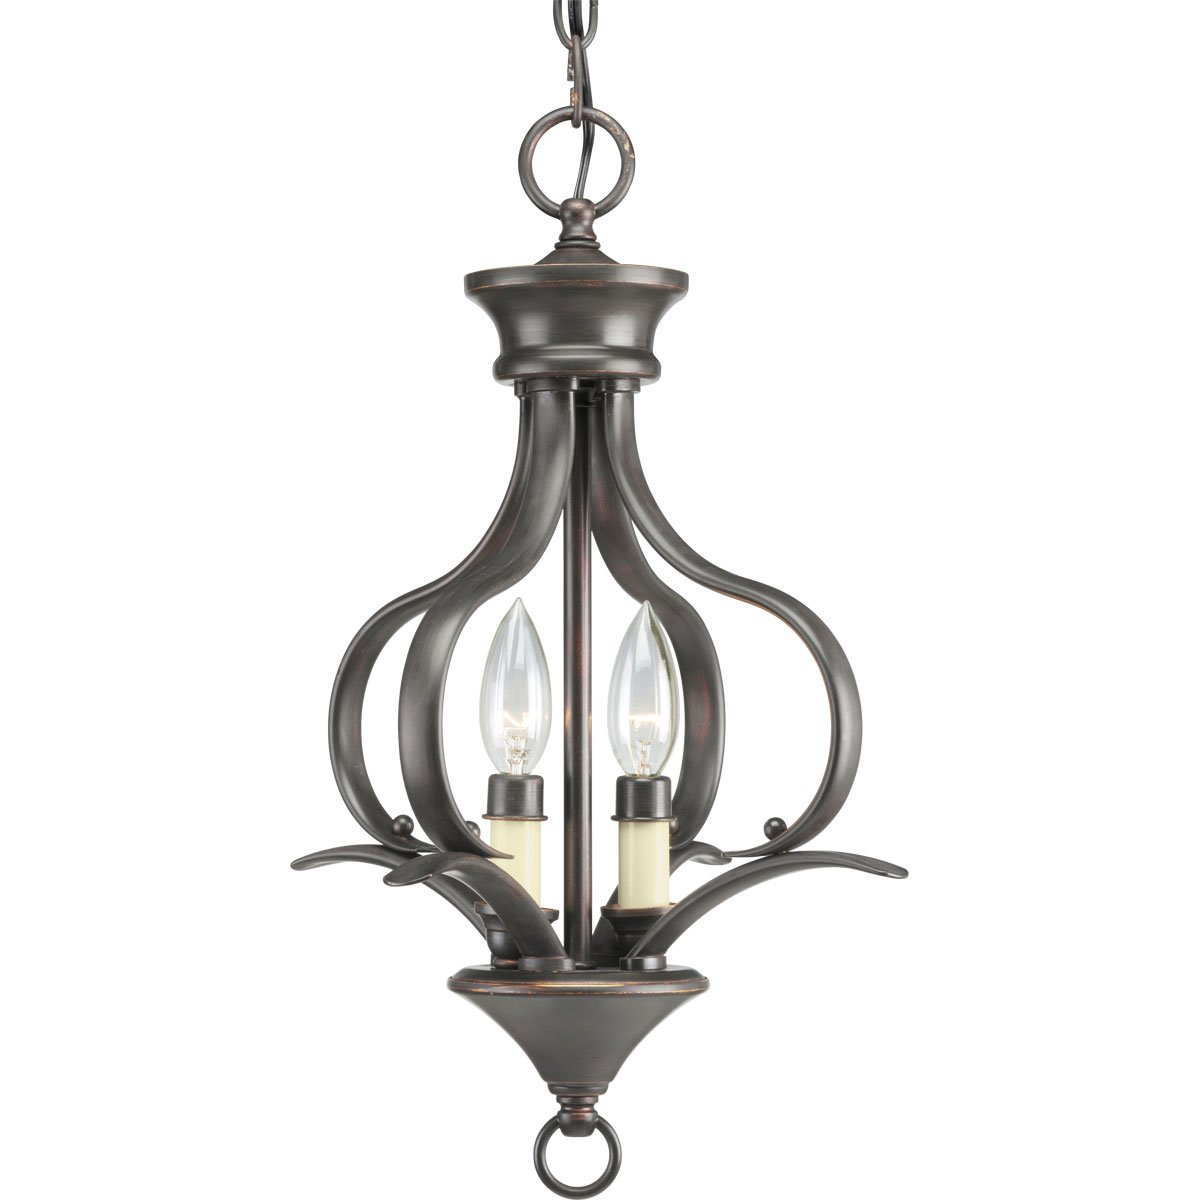 Progress lighting p3806 20 2 light foyer fixture antique bronze progress lighting p3806 20 2 light foyer fixture antique bronze chandeliers amazon arubaitofo Images